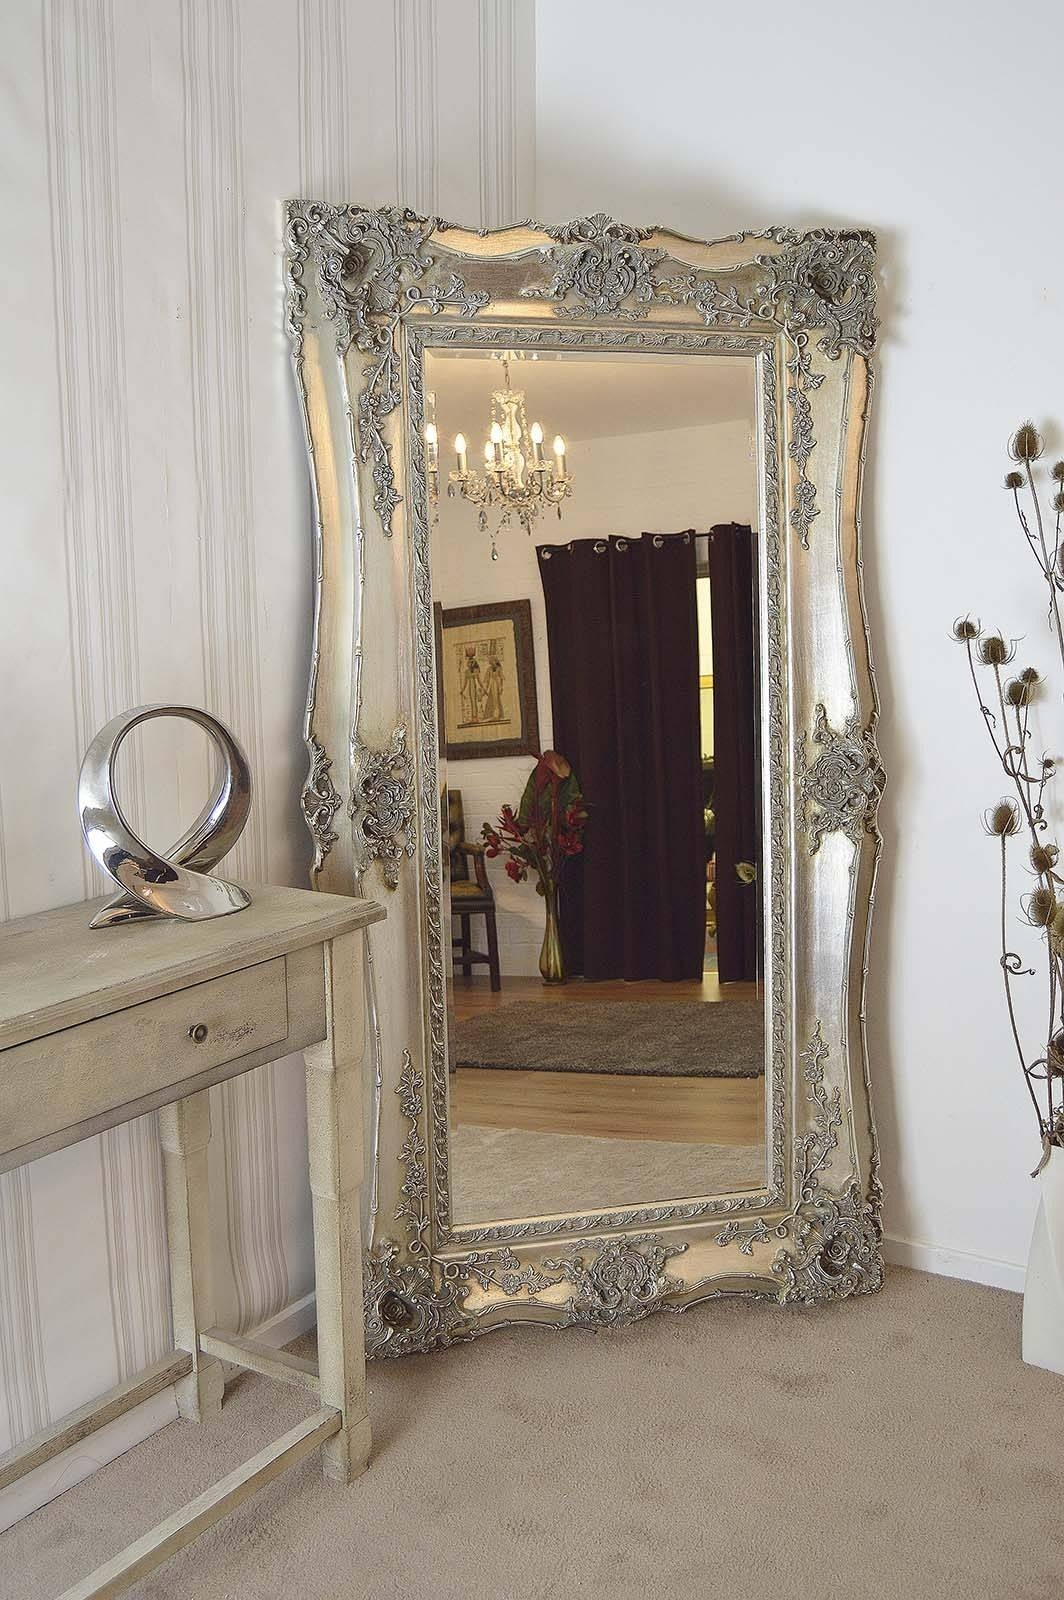 Extra Large Framed Mirrors 105 Trendy Interior Or Plain Design in Large Ornate White Mirrors (Image 10 of 25)